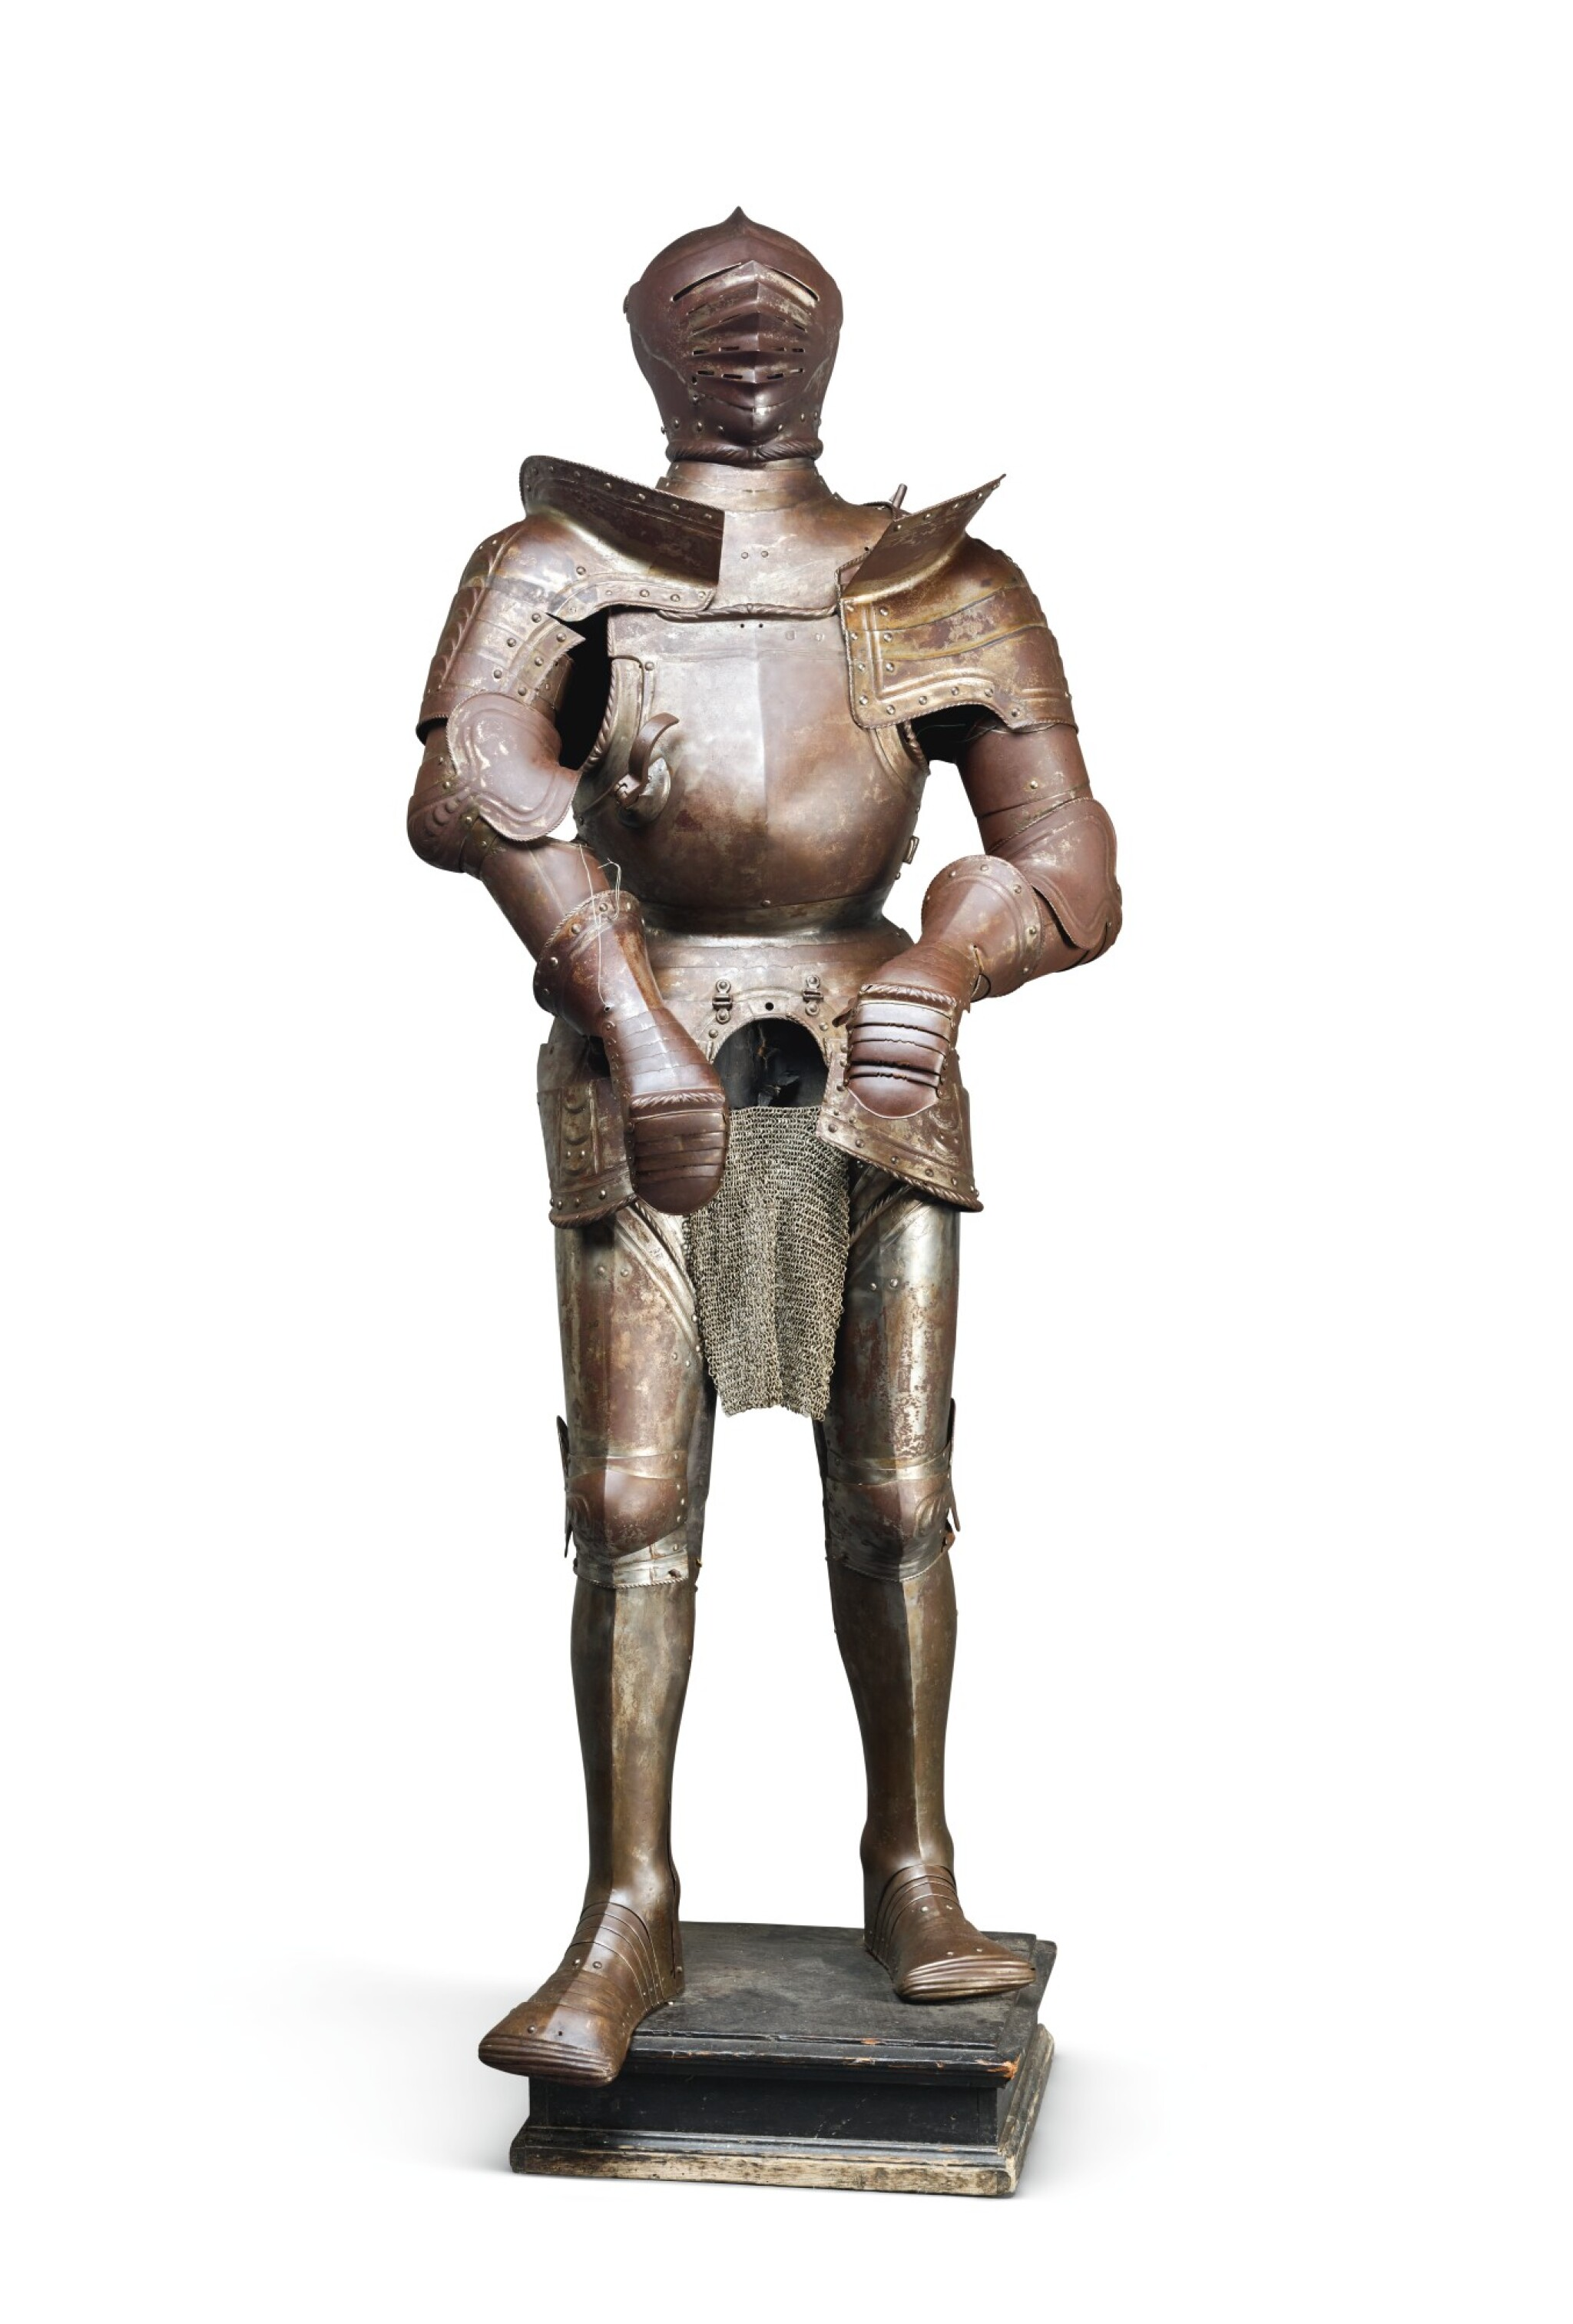 A GERMAN FULL ARMOUR IN THE INNSBRUCK STYLE OF 1540, 19TH CENTURY, PROBABLY NUREMBURG